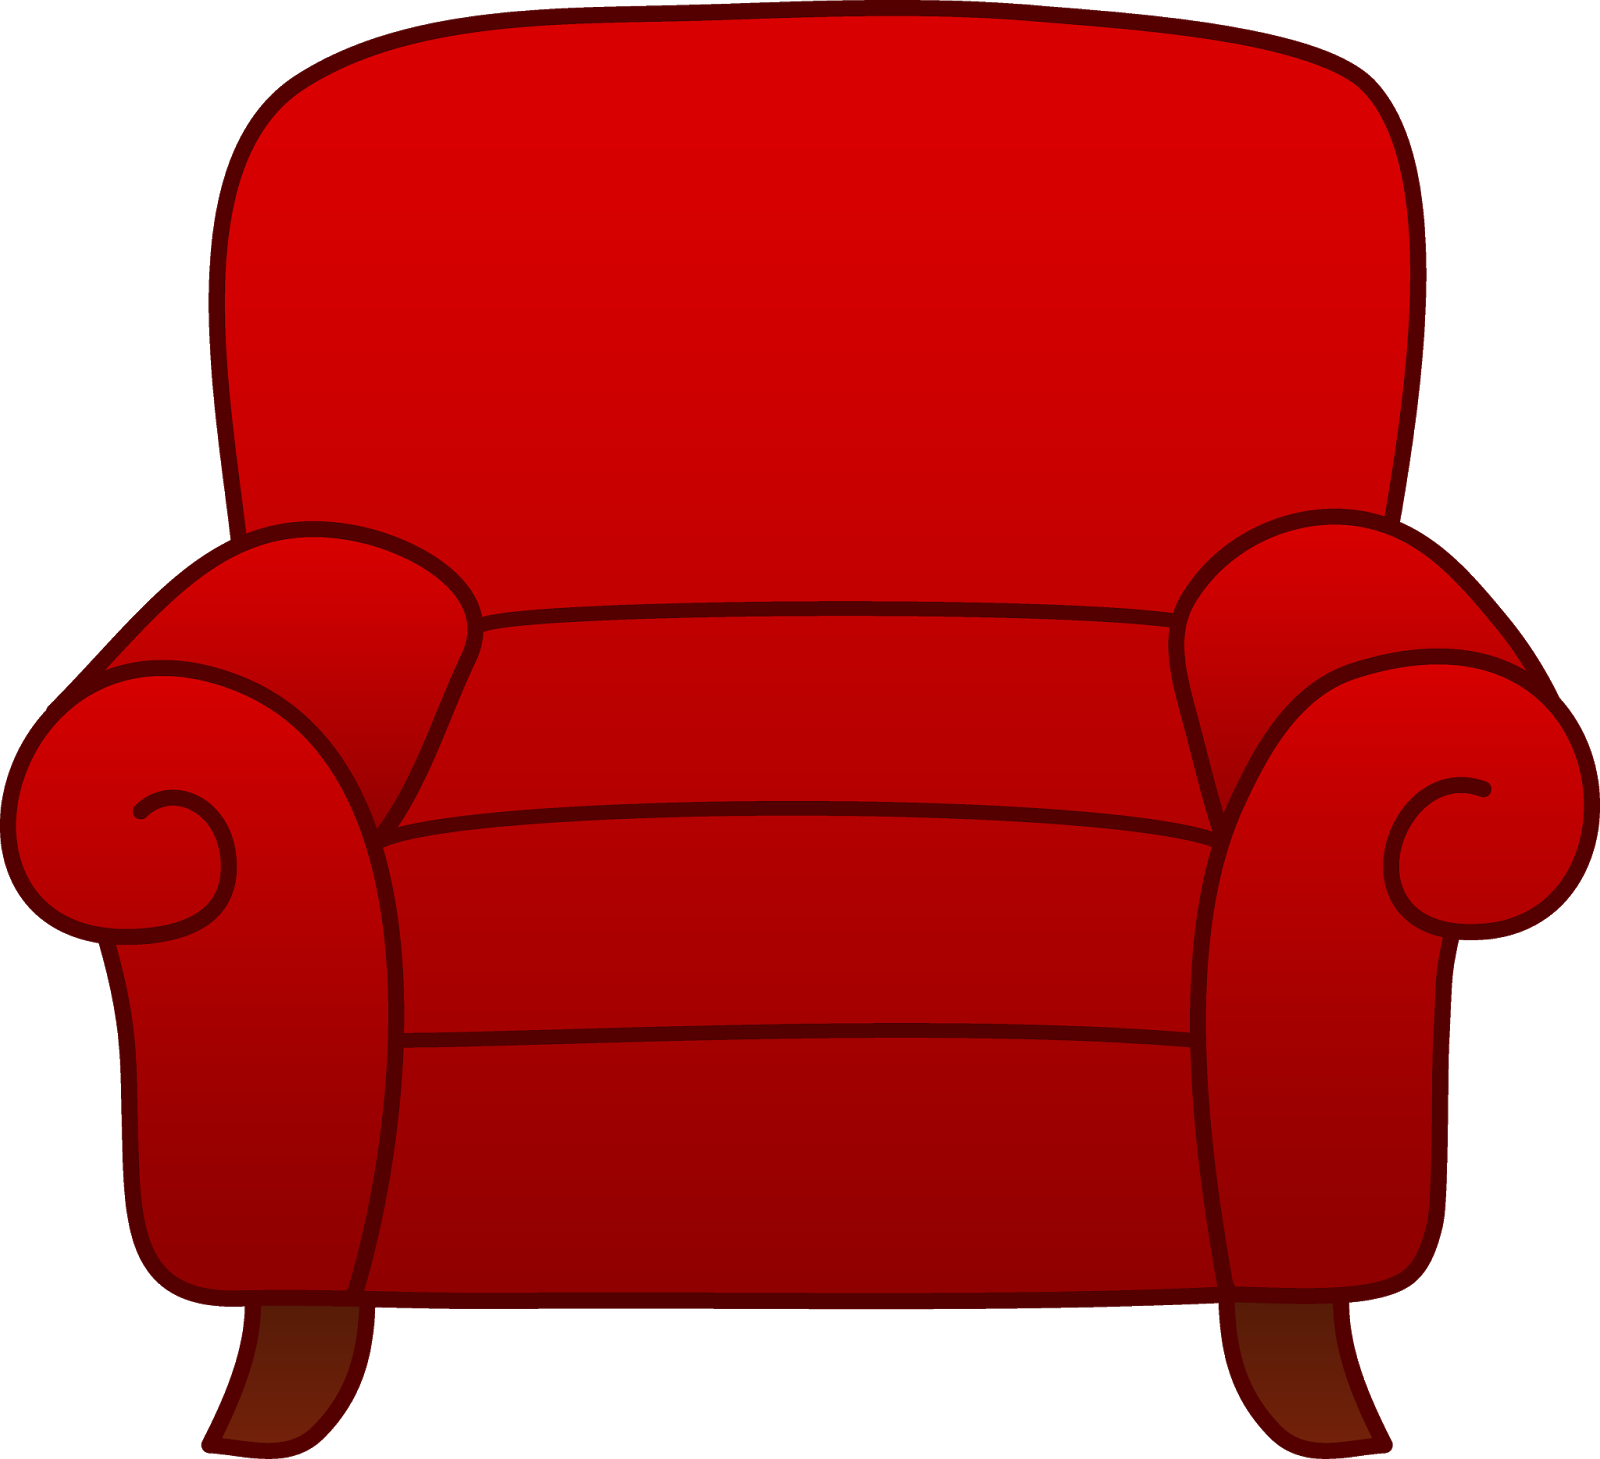 Furniture clipart comfortable chair. The worst of leonard